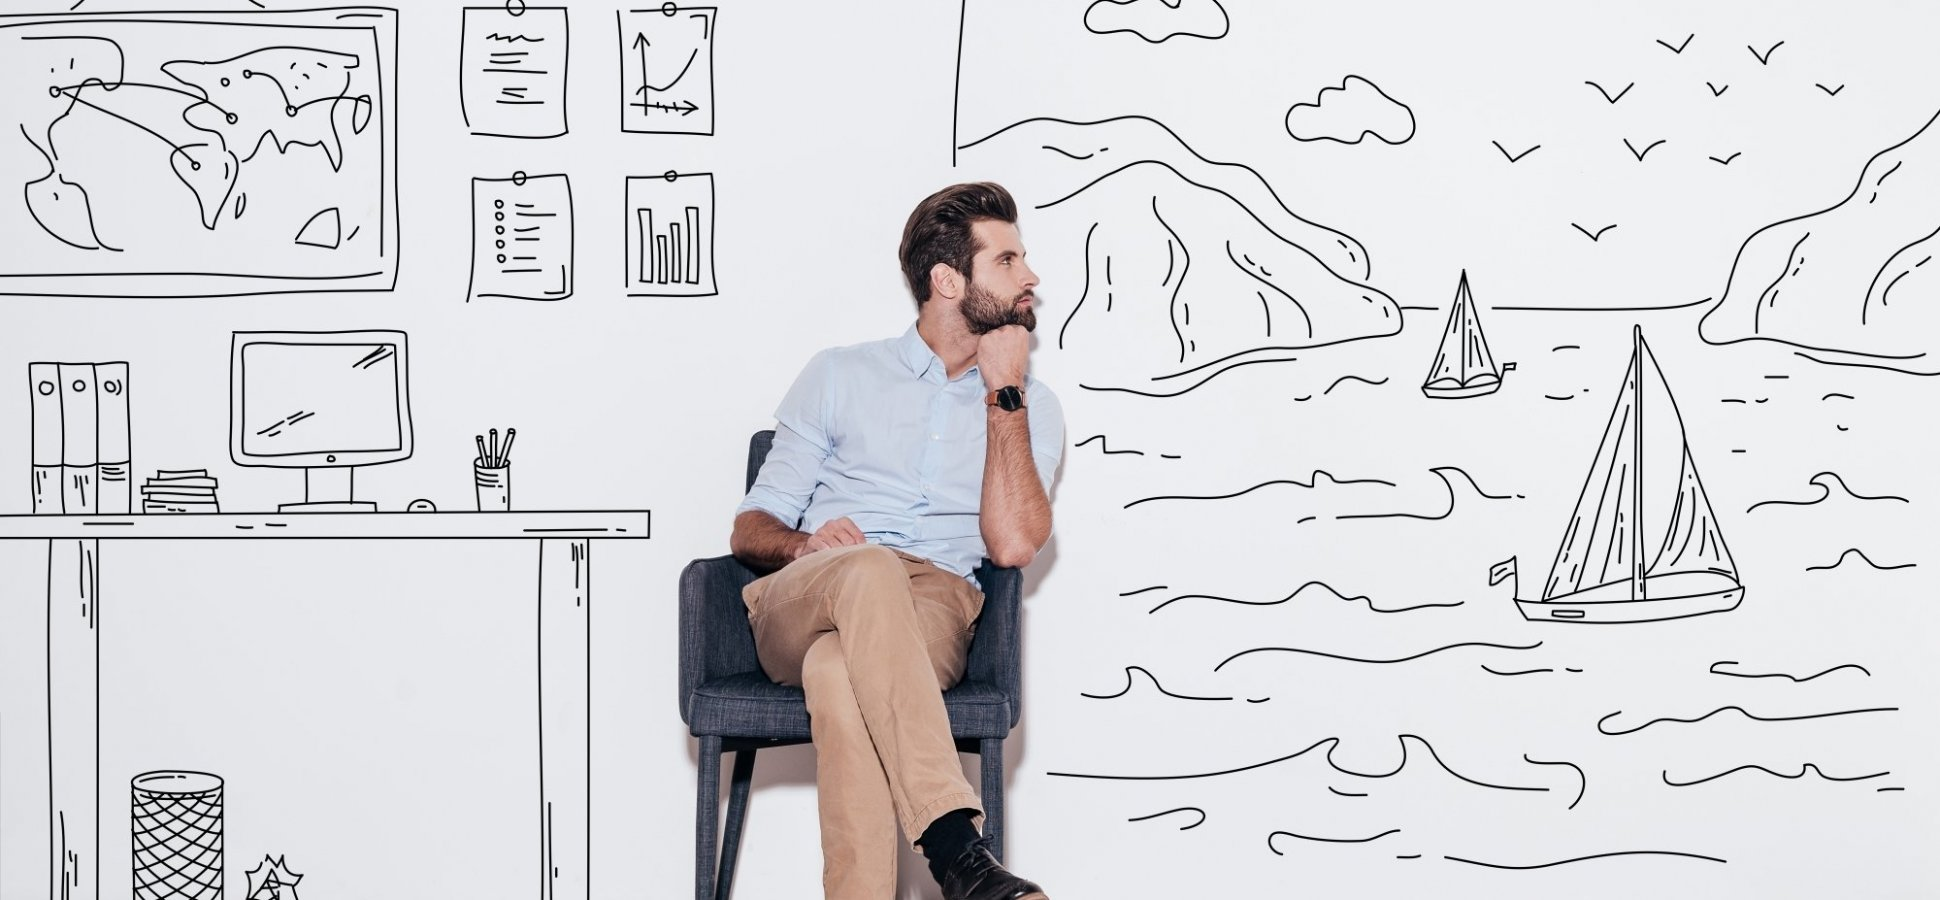 Everything You Should Consider Before Quitting A Job To Start Your Own Company